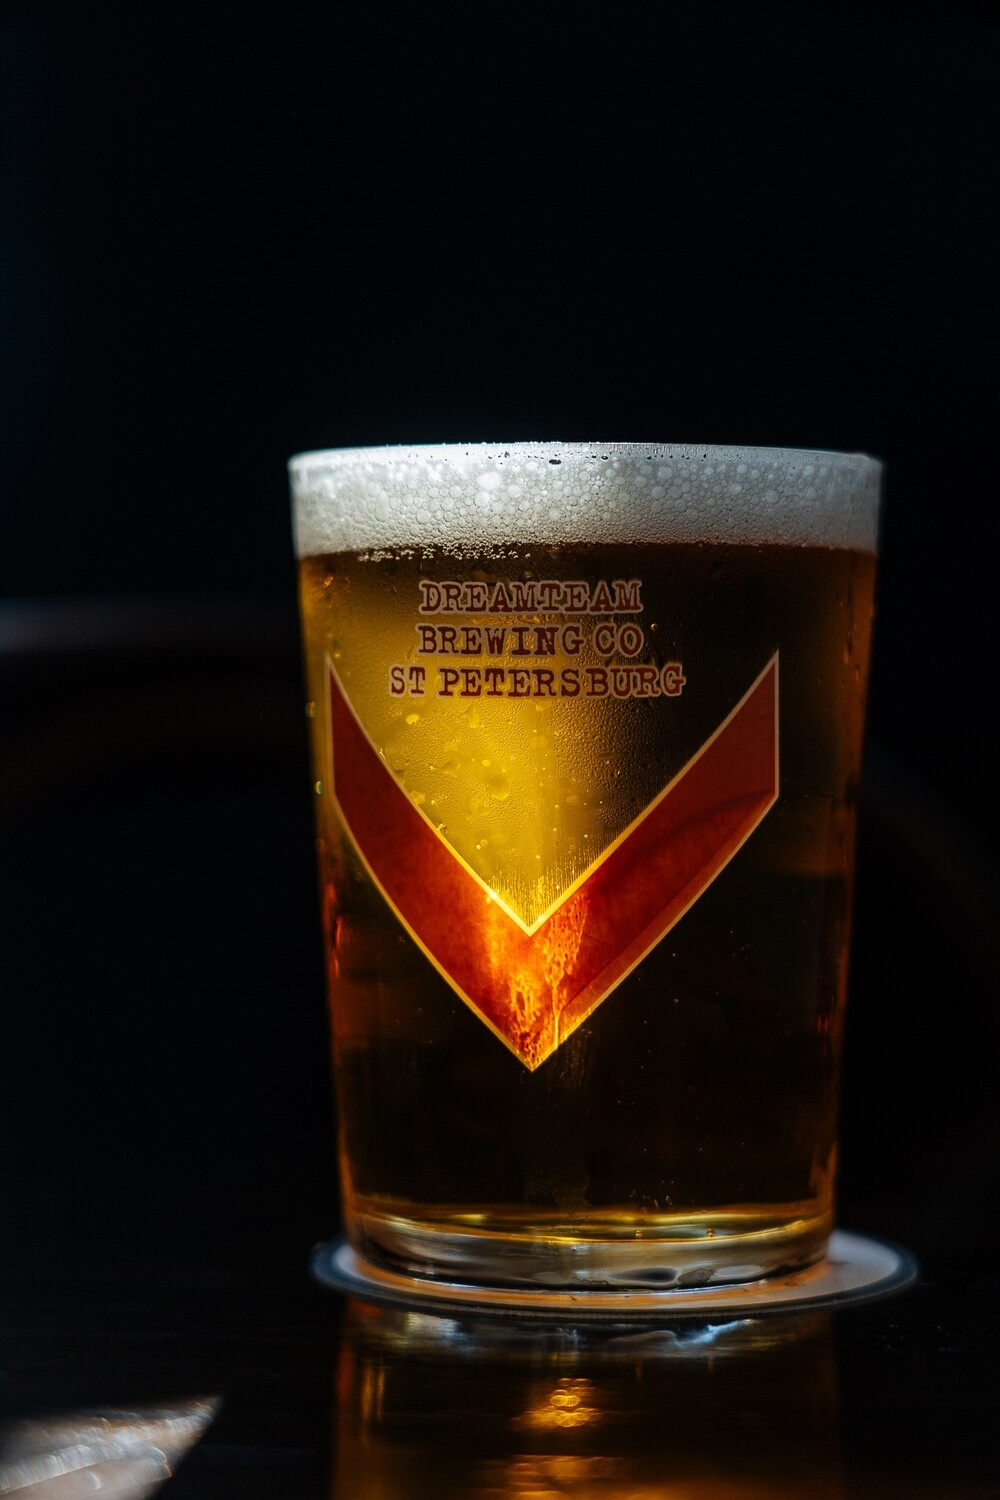 ПИНТА DREAMTEAM BREWING CO